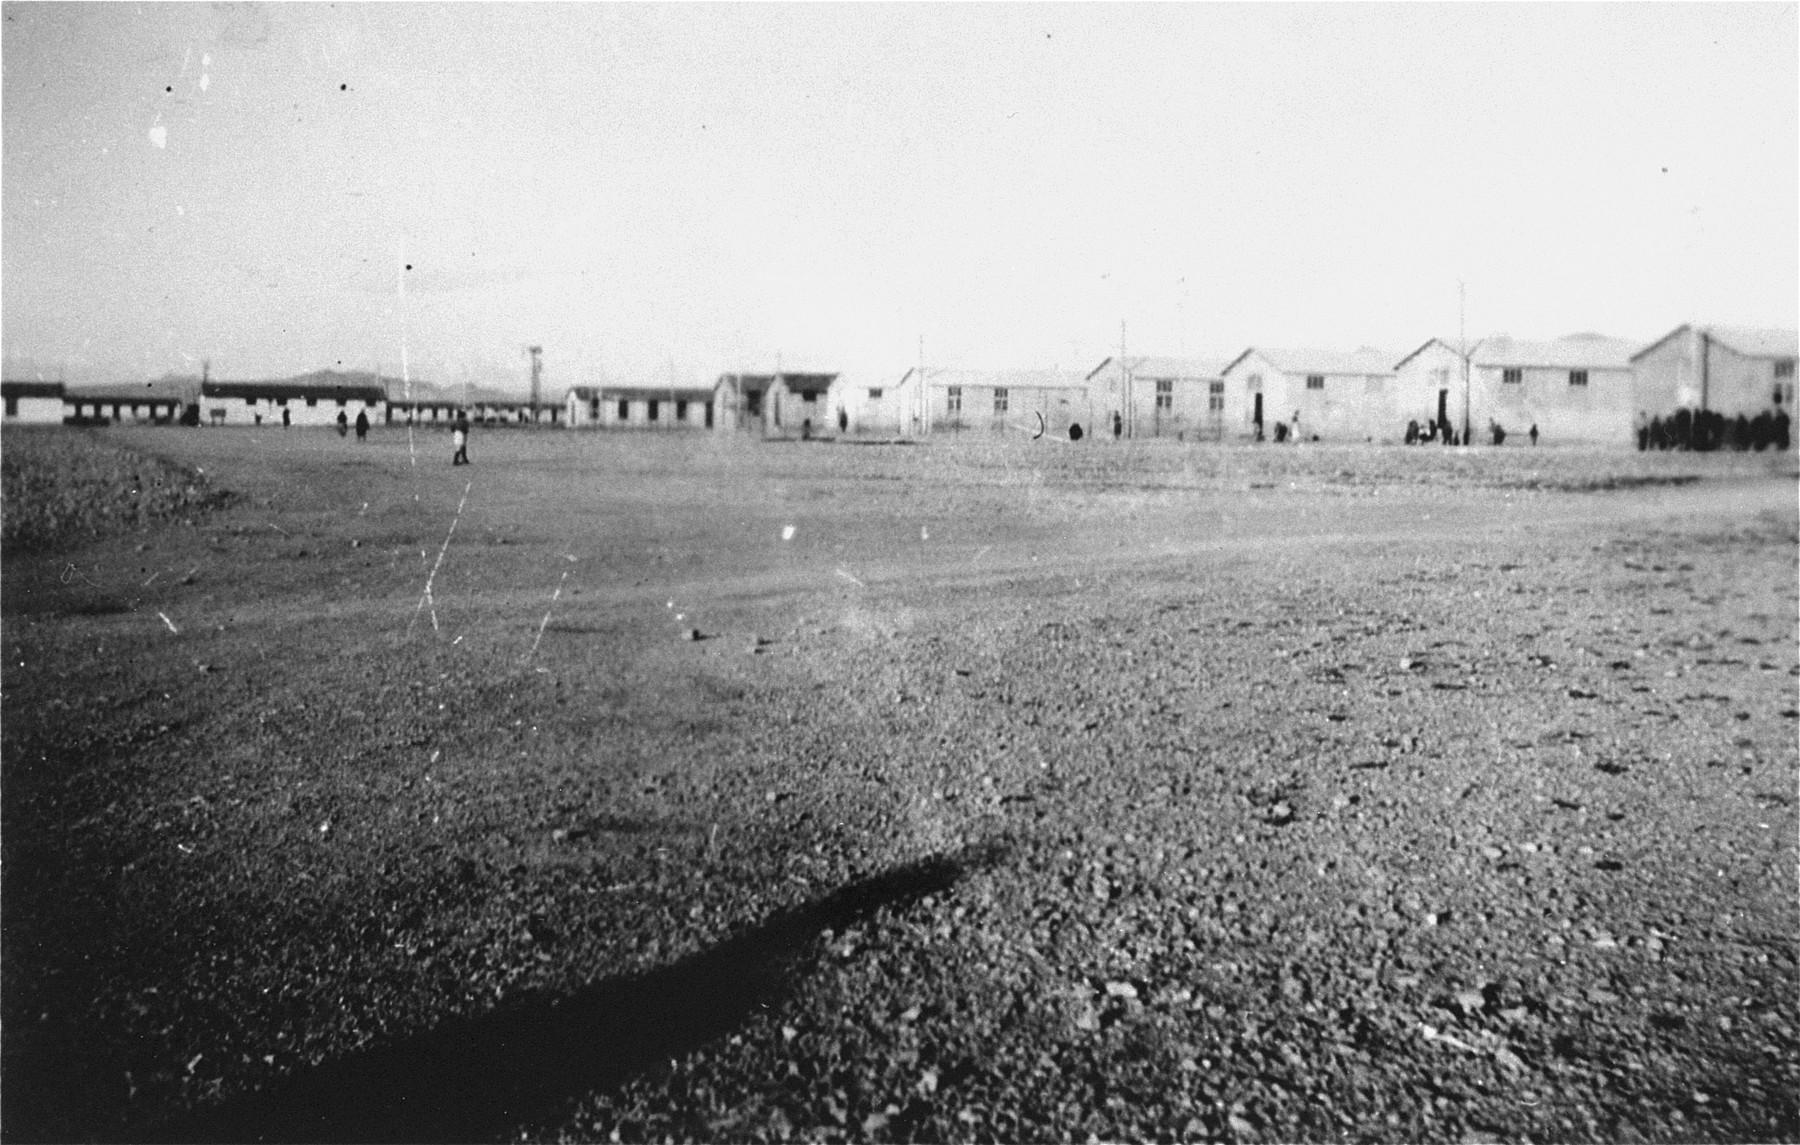 A section of the Rivesaltes transit camp.